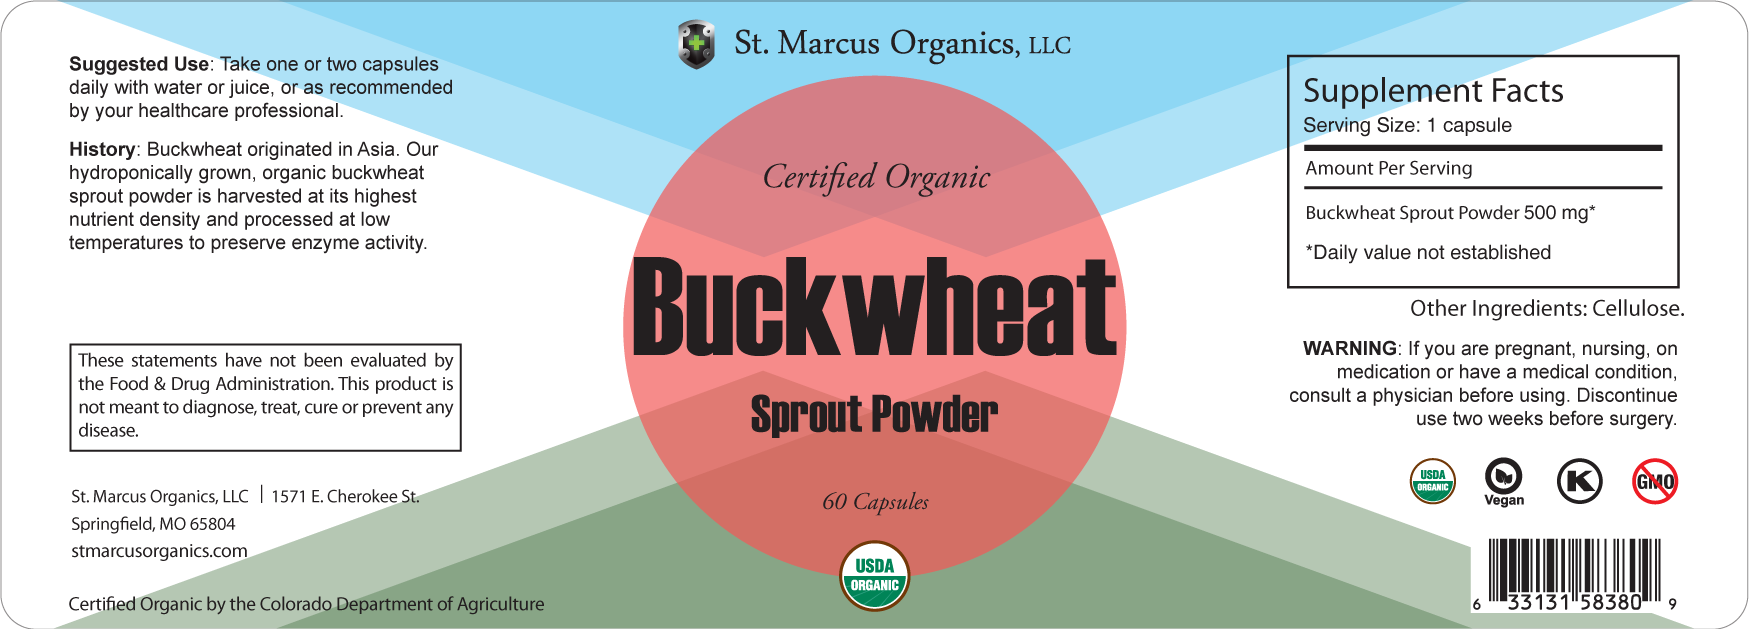 Buckwheat-Sprout-Powder-Capsules-St-Marcus-Organics